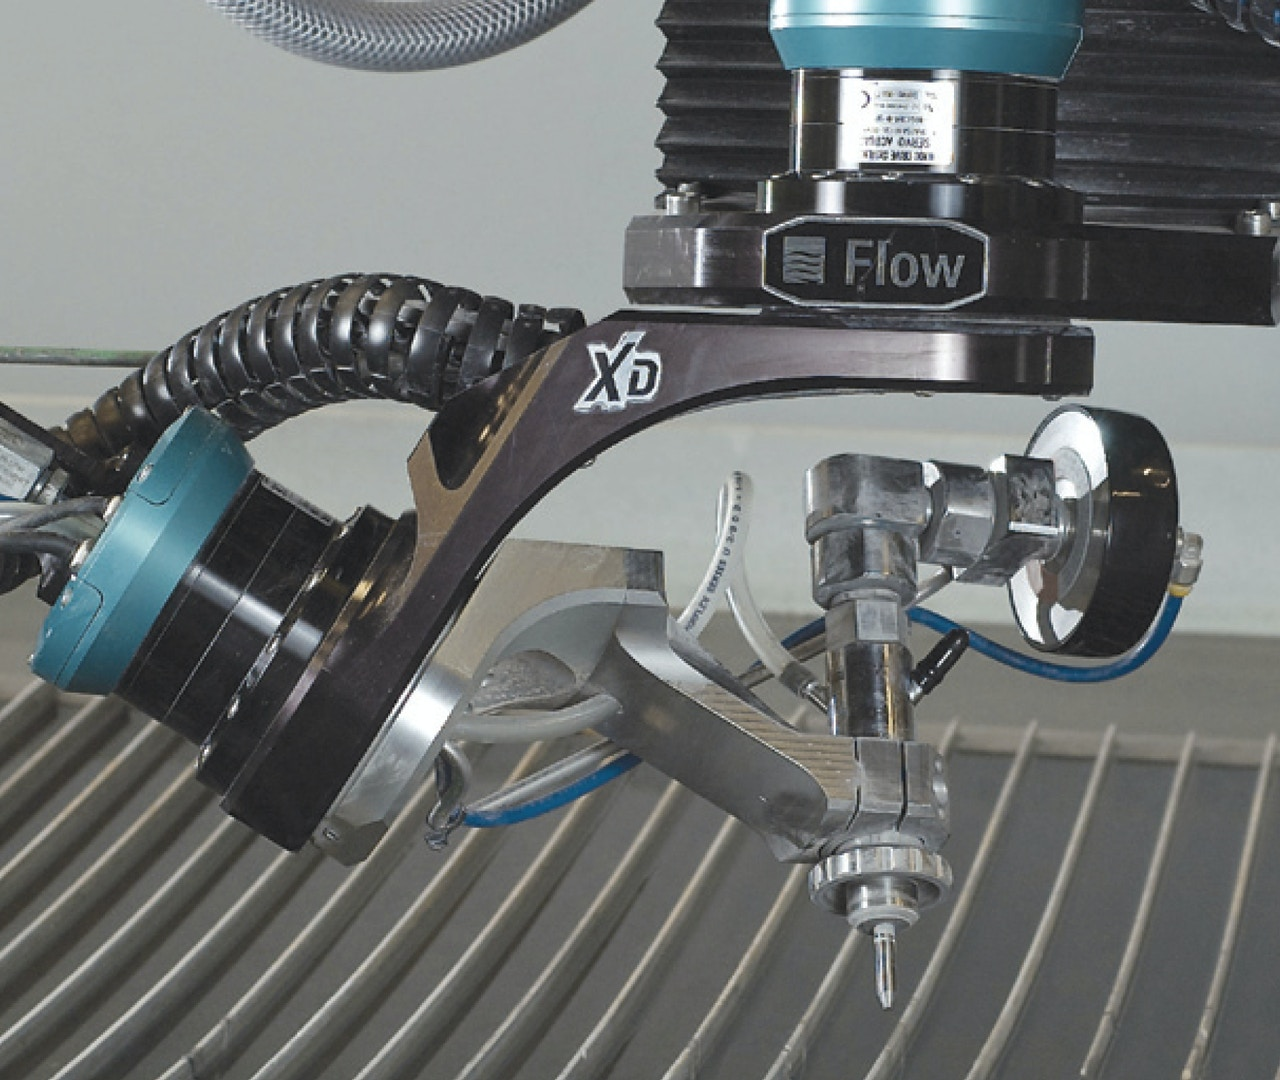 MW Components hyper pressure technology